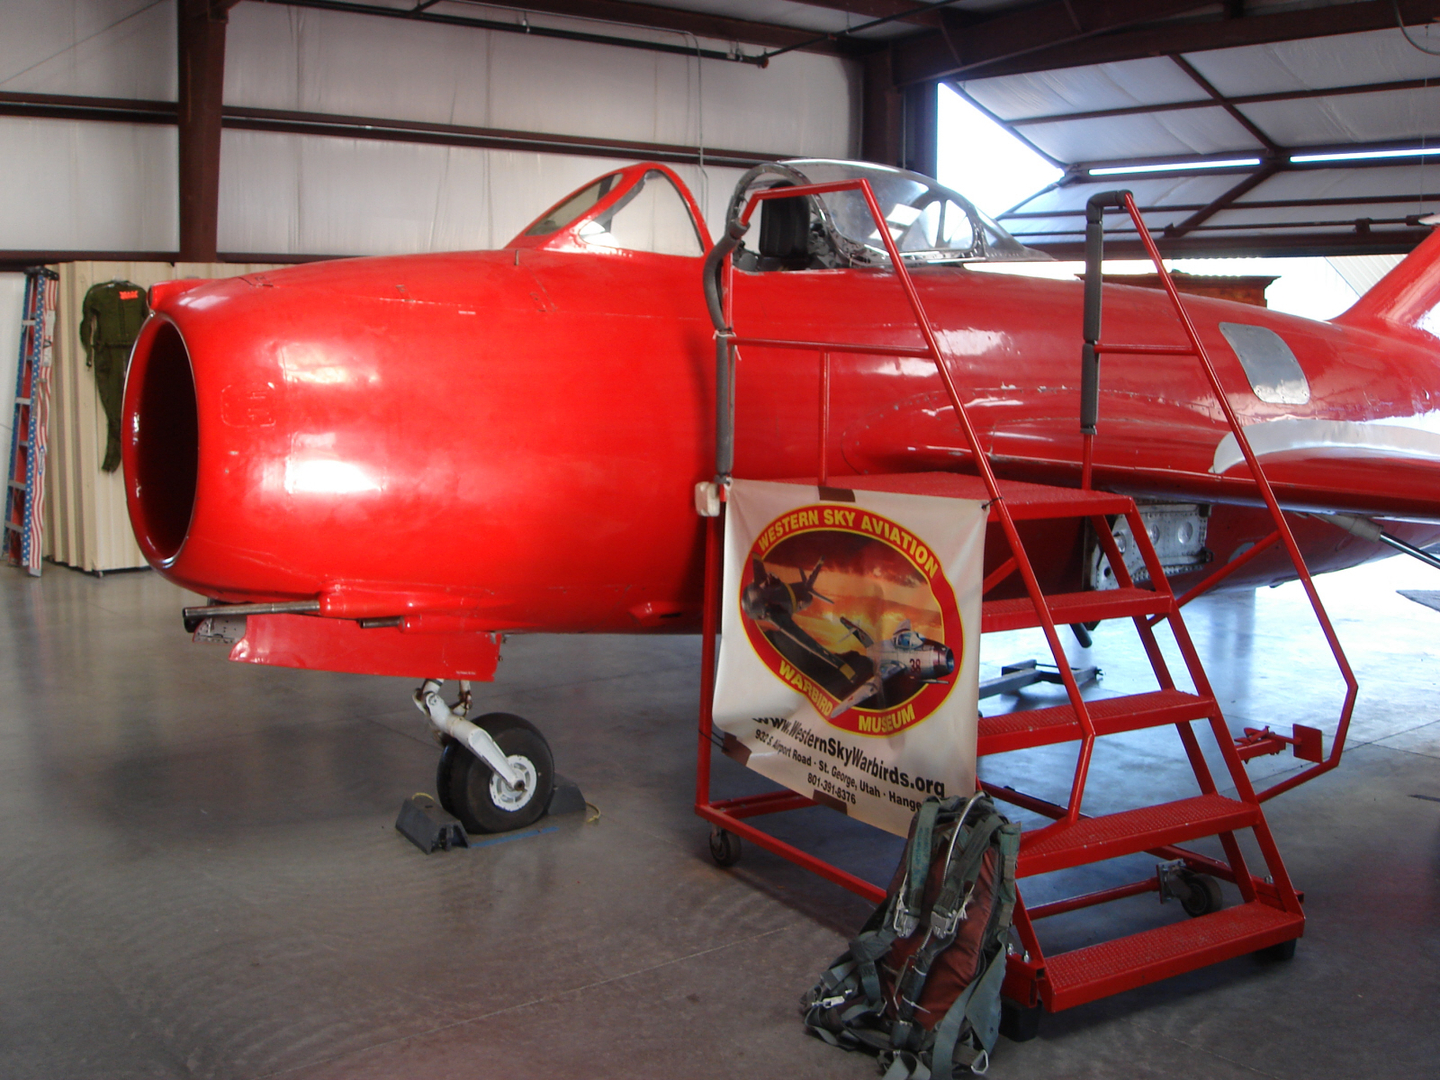 Western Sky Aviation Warbird Museum - Home Page